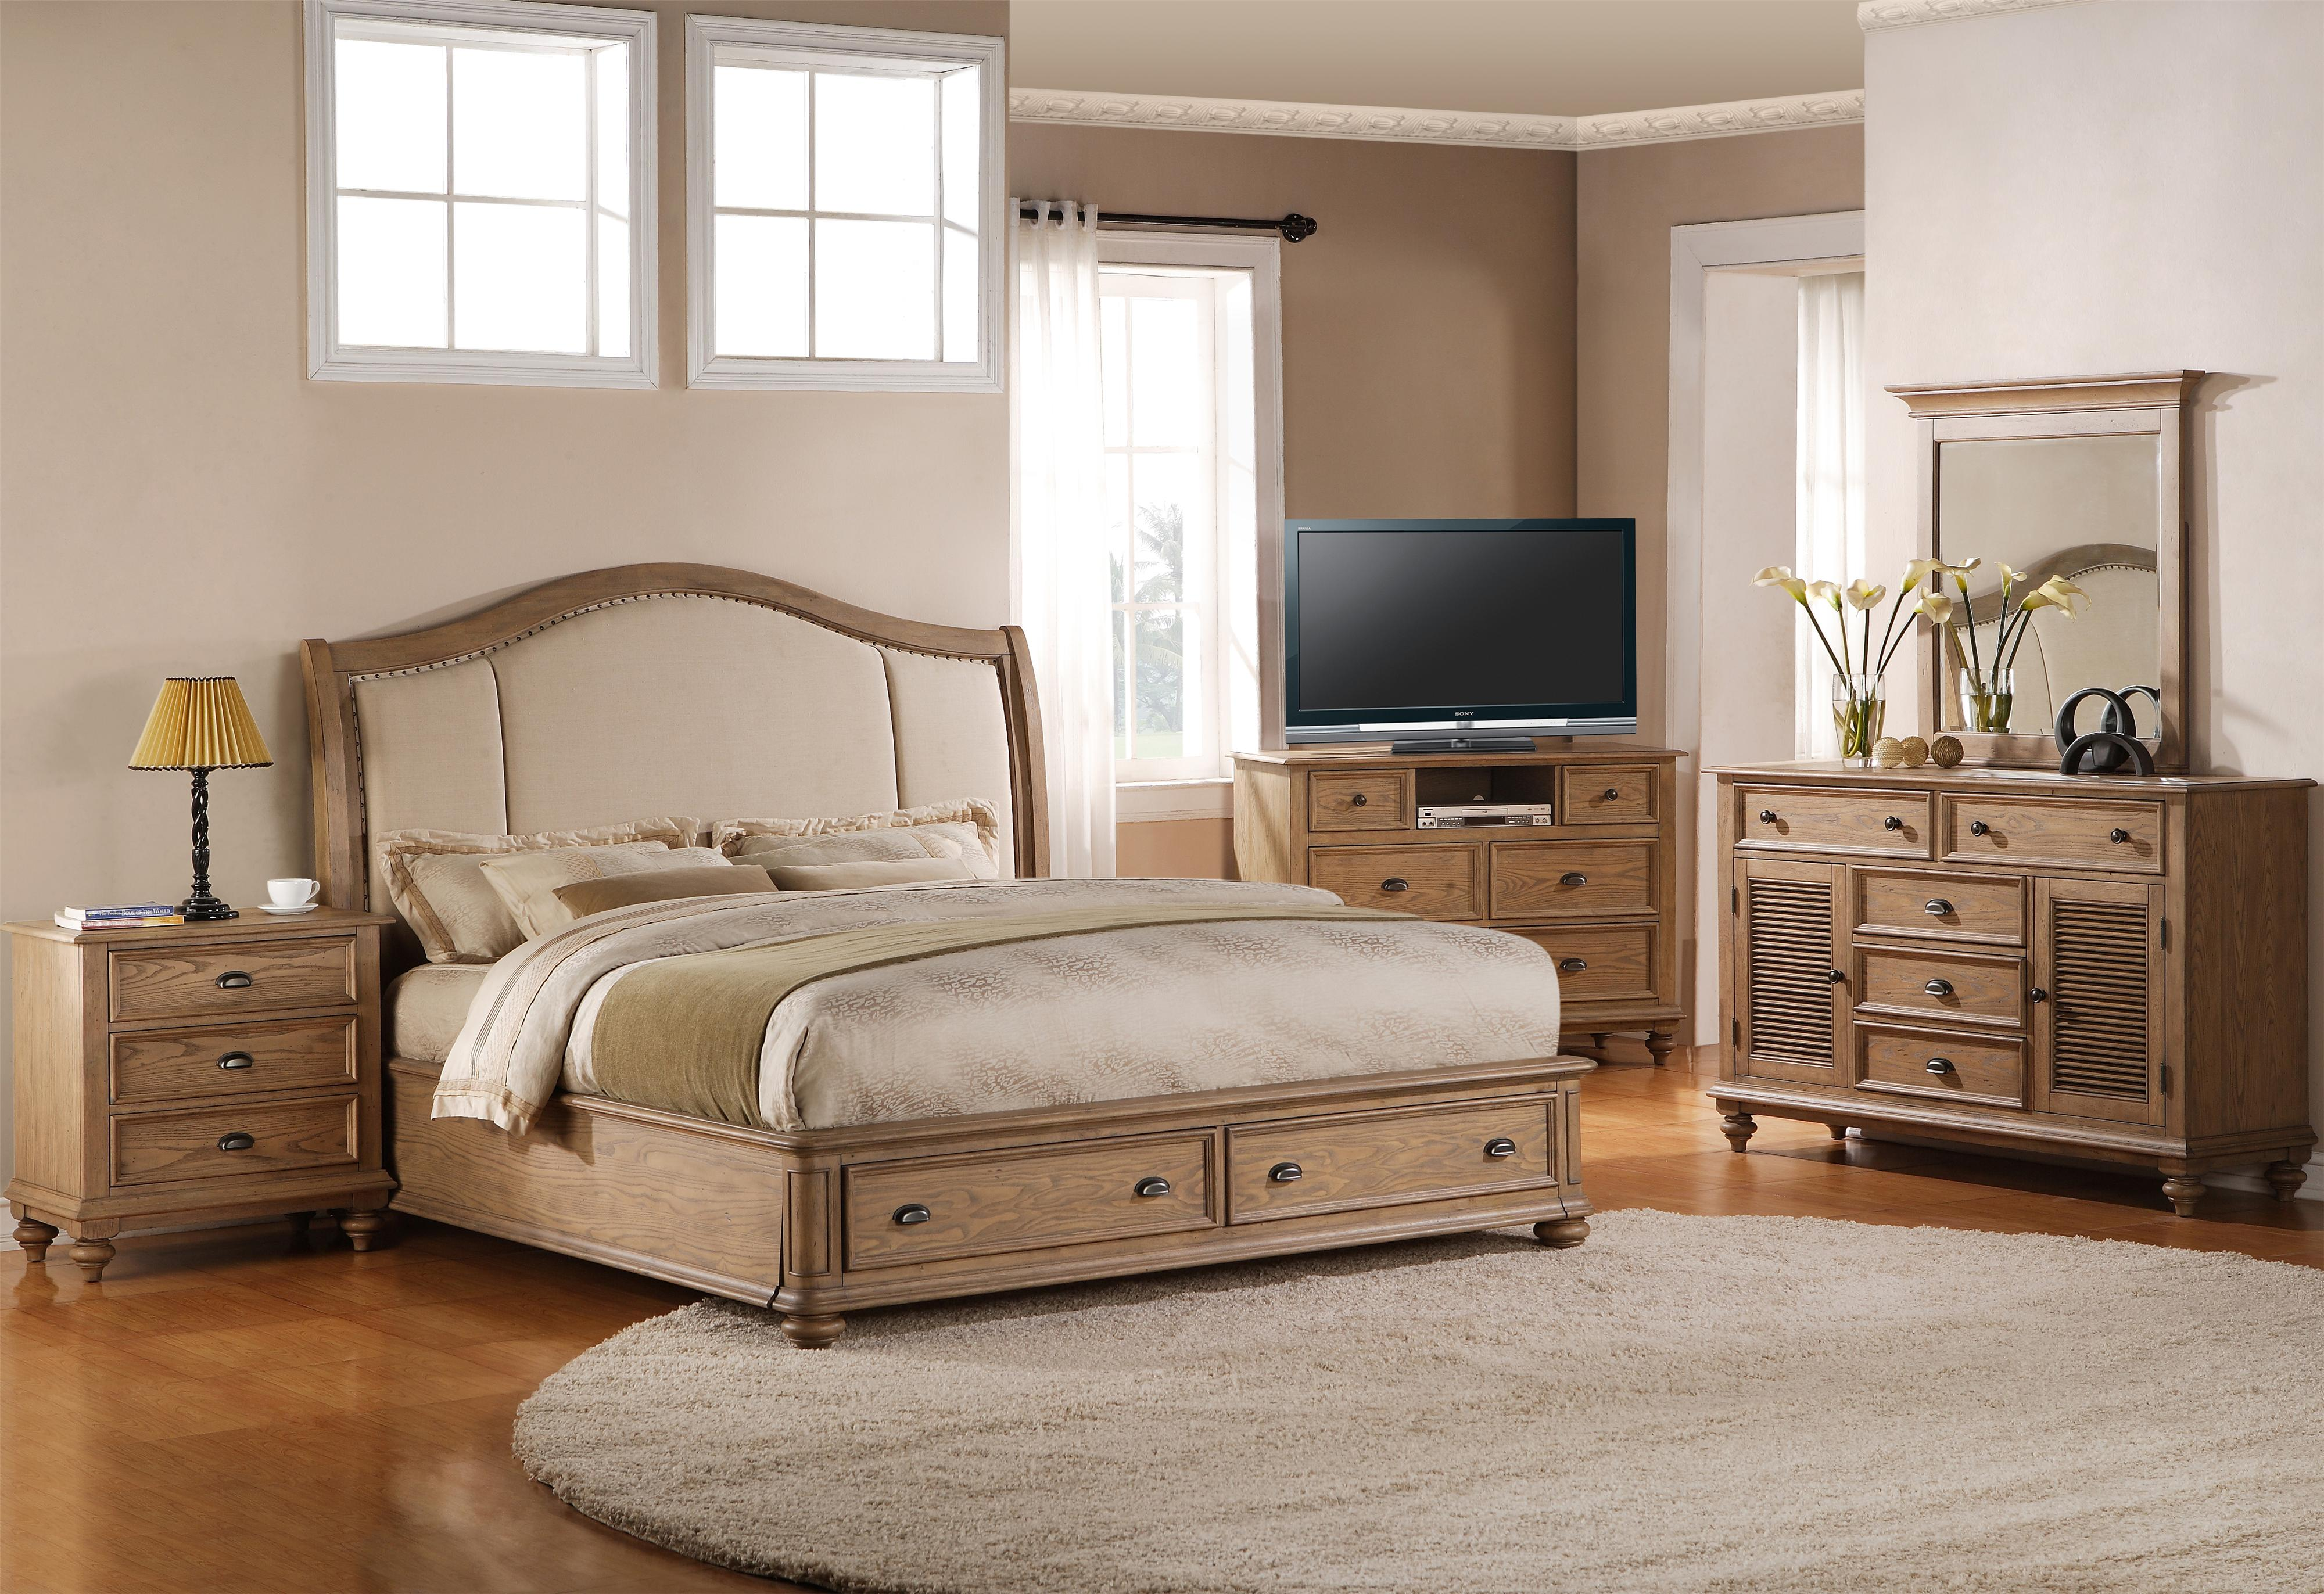 Coventry King Upholstered Headboard Bed With Storage Footboard By Riverside Furniture Wolf